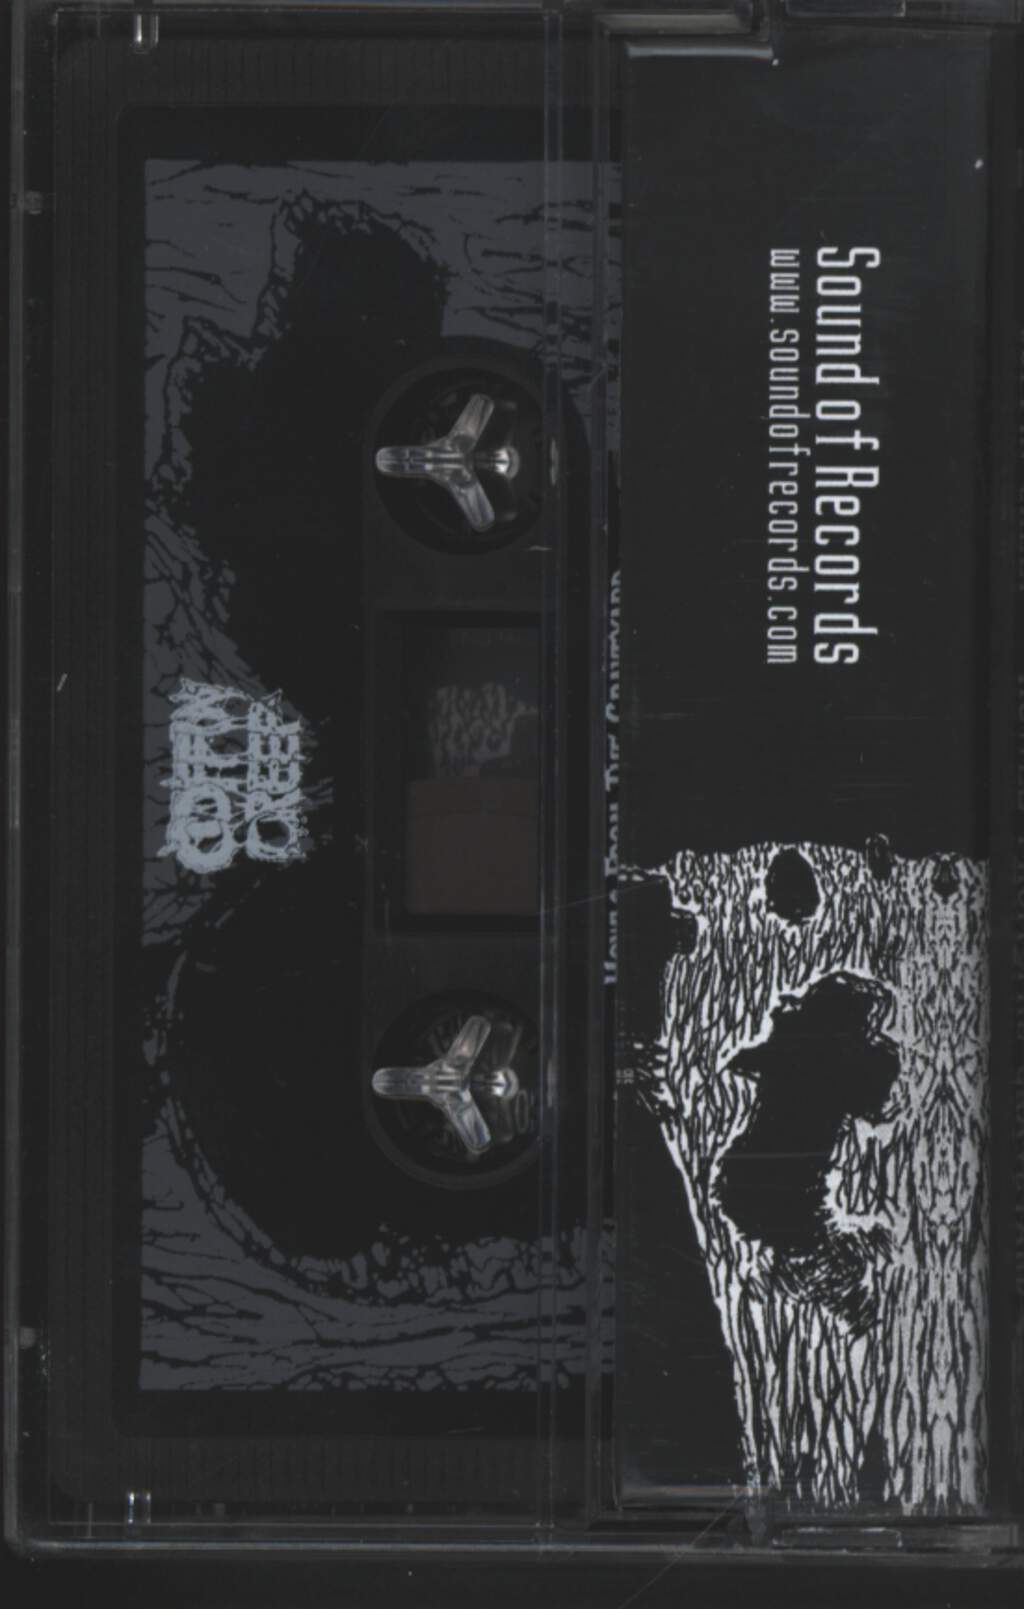 Coffin Creep: Howls From The Graveyard, Compact Cassette